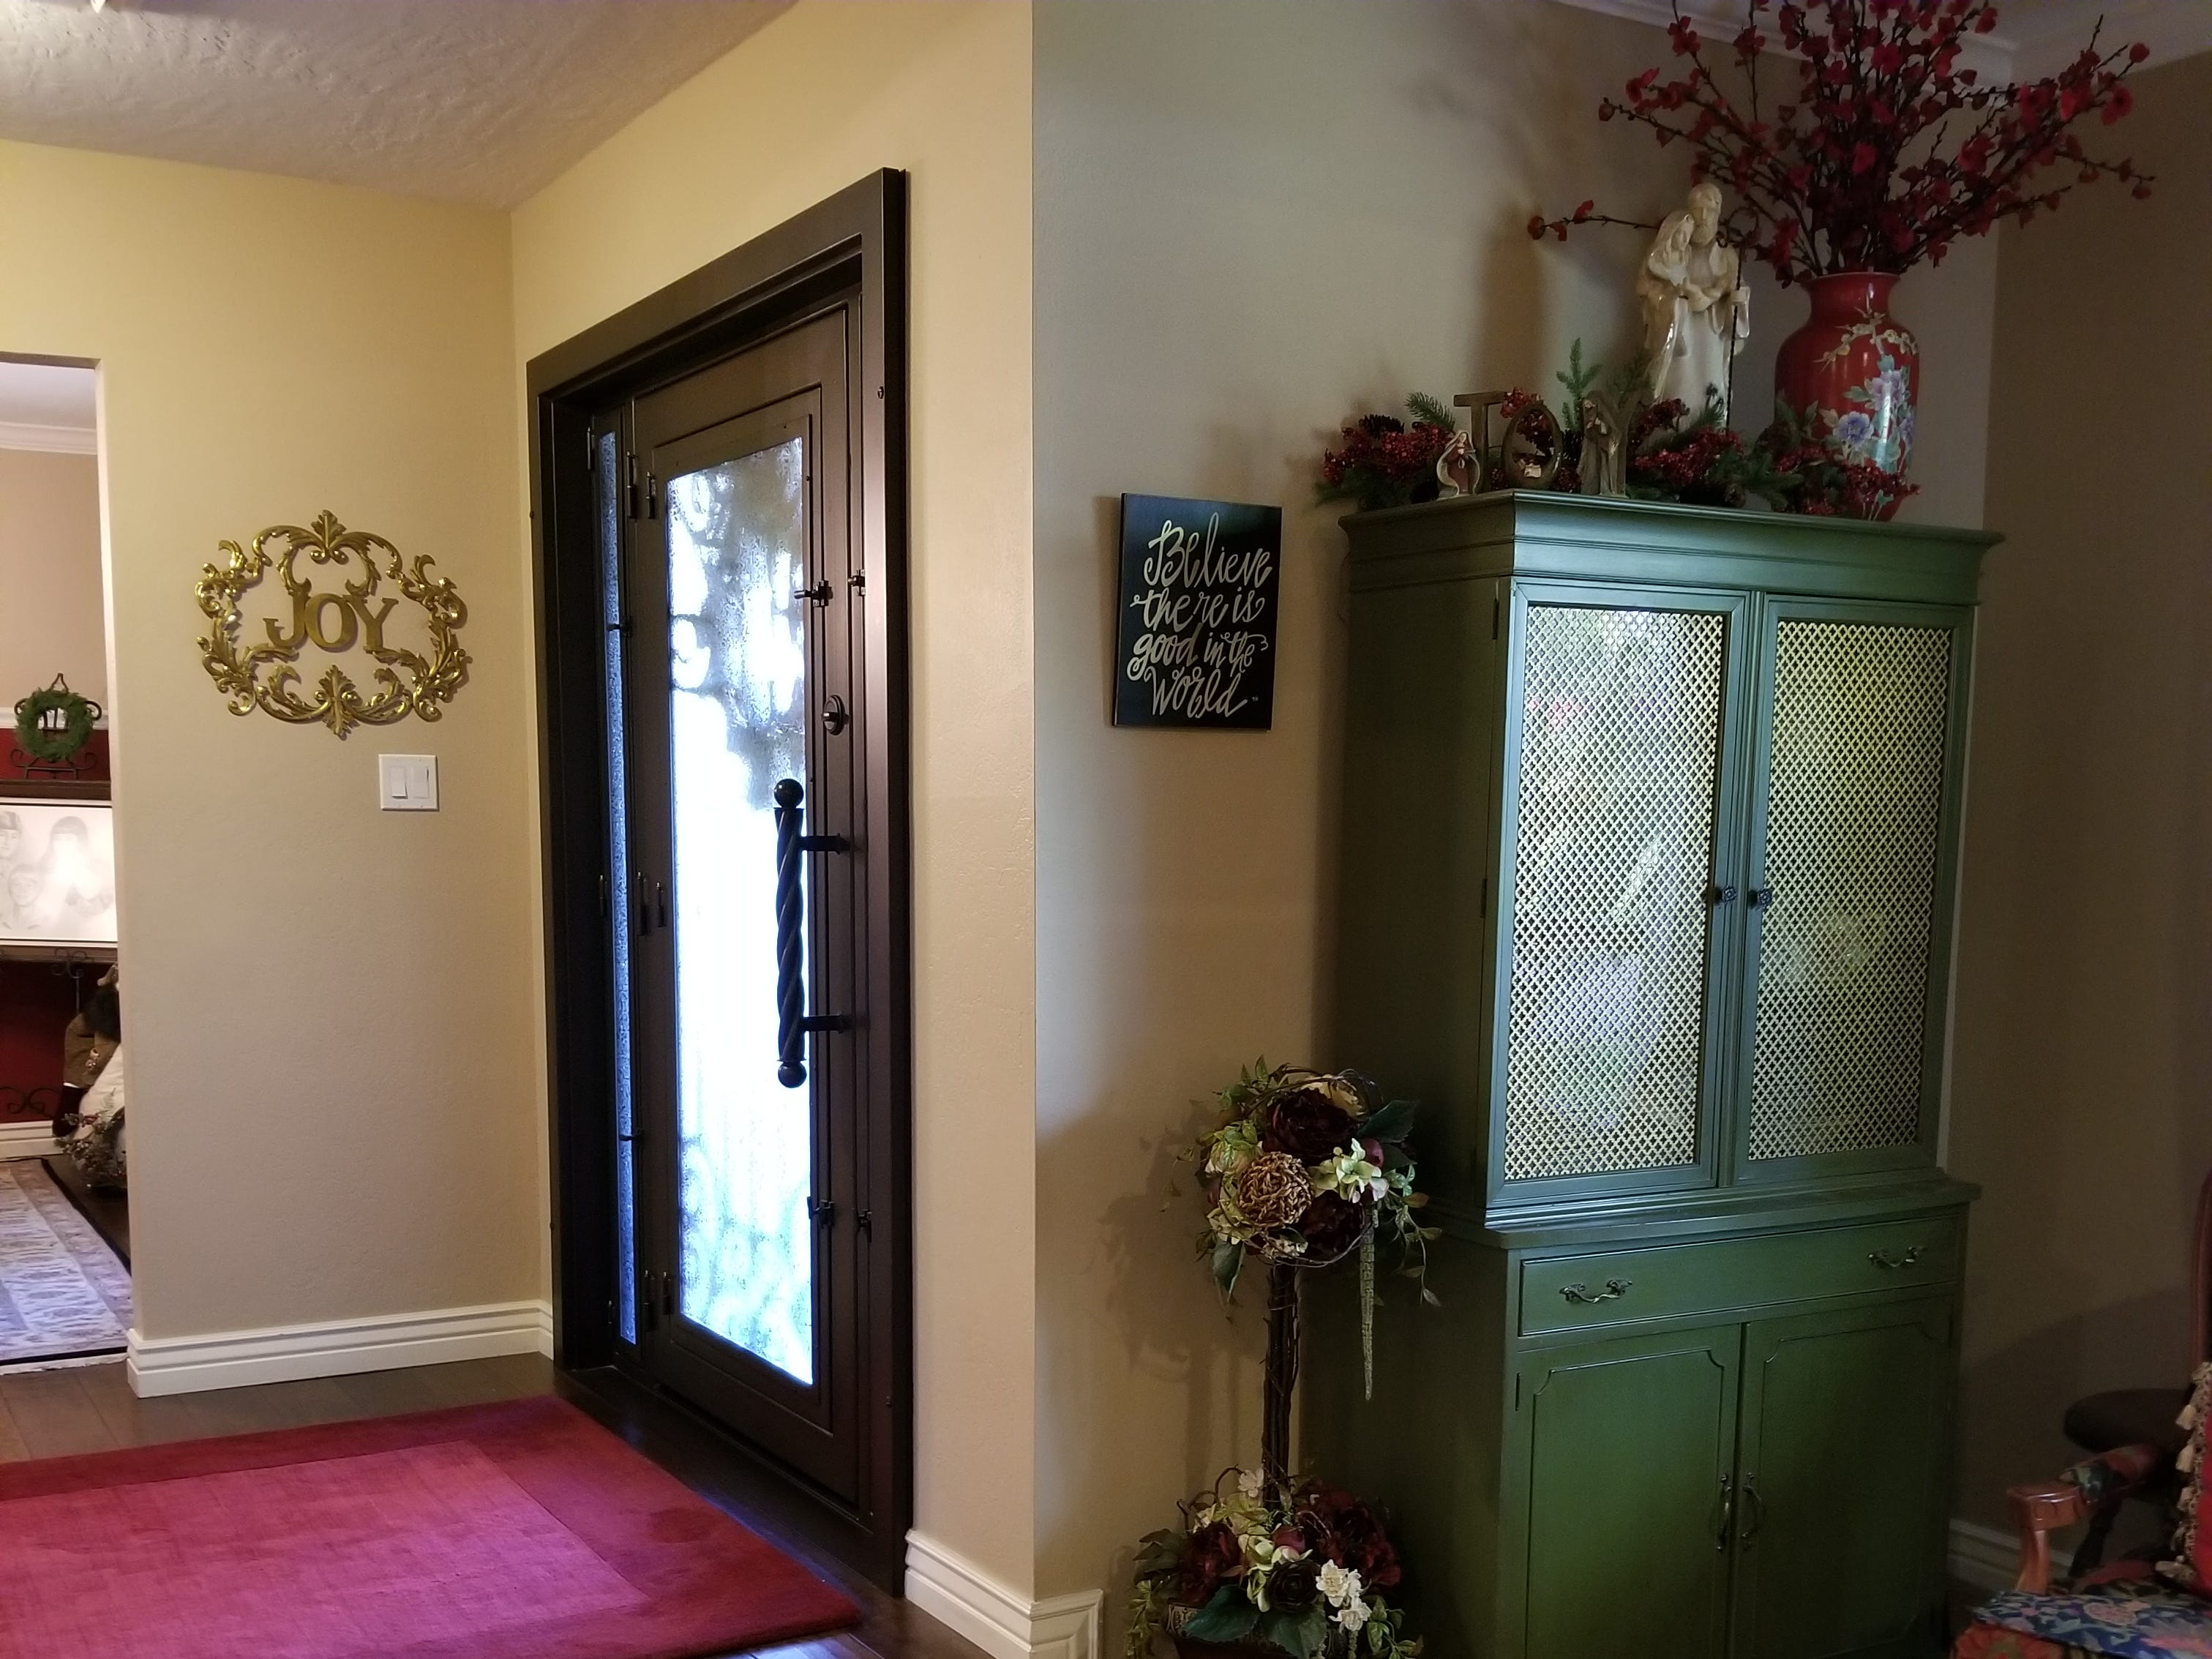 A raised entry of engineered dark wood flooring separates the living room to the left, and formal dining room to the right. Double French doors were a thoughtful design element during the years of raising their family, keeping the two formal rooms intact. An antique sewing cabinet holds court just before the French door entry into a hallway leading to bedrooms on the left, and kitchen, den and office to the right.